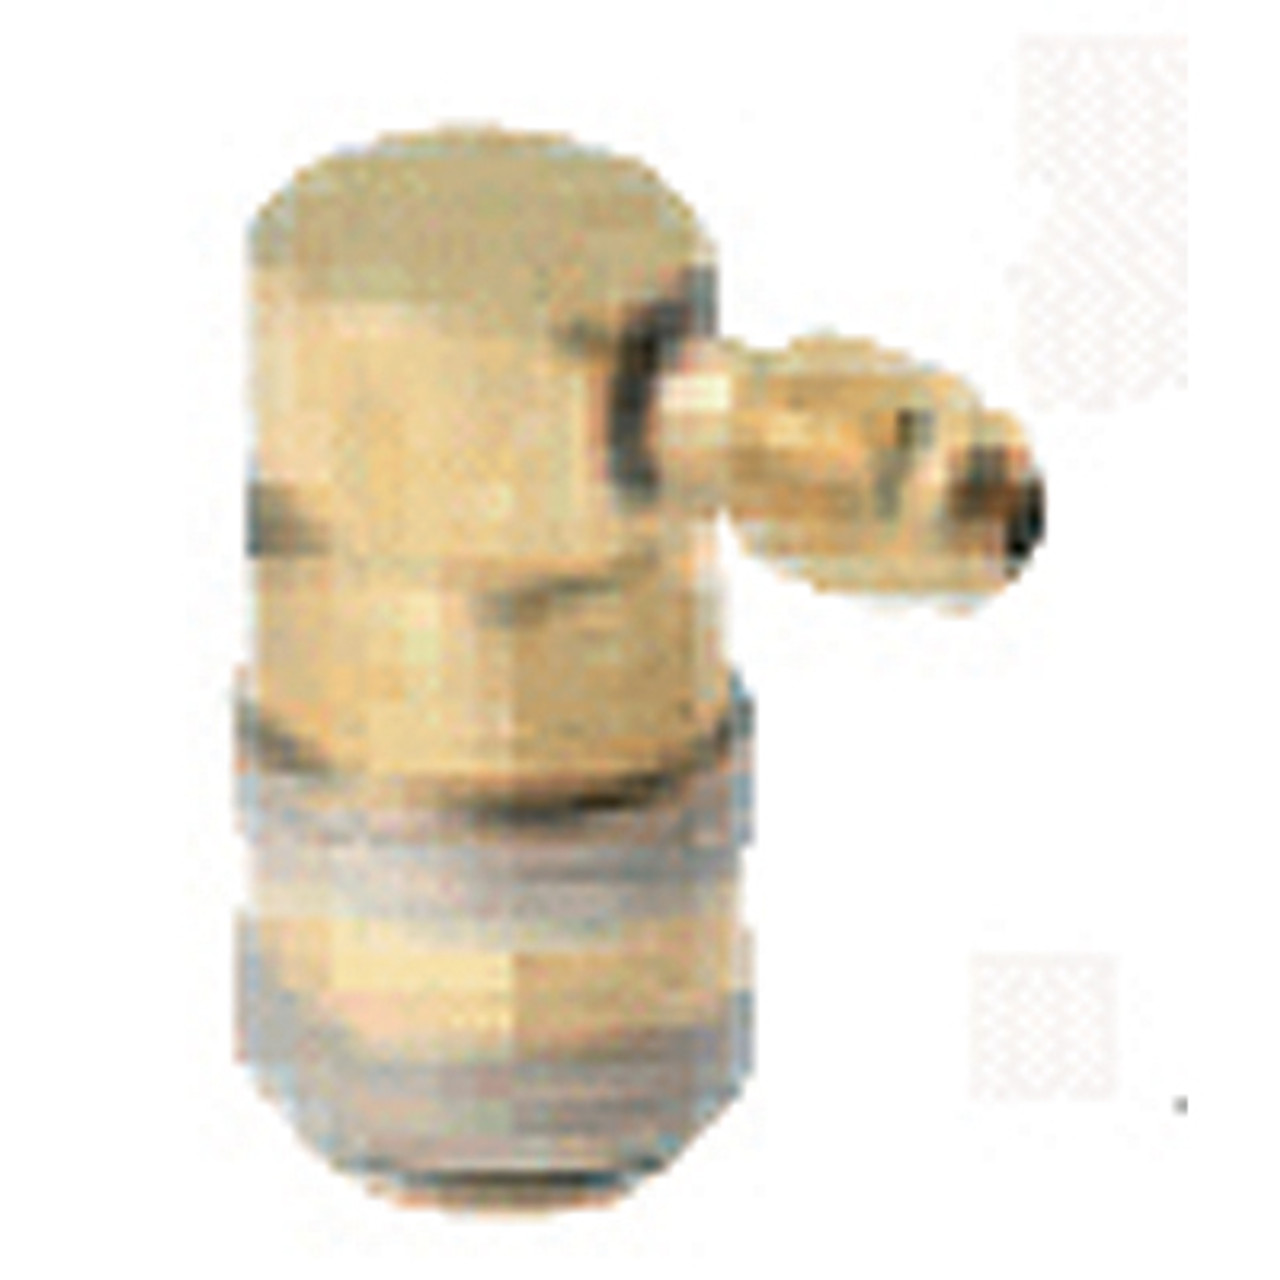 FJC 6006 14mm x 1.5 90 Degree R134A Low Side Quick Coupler